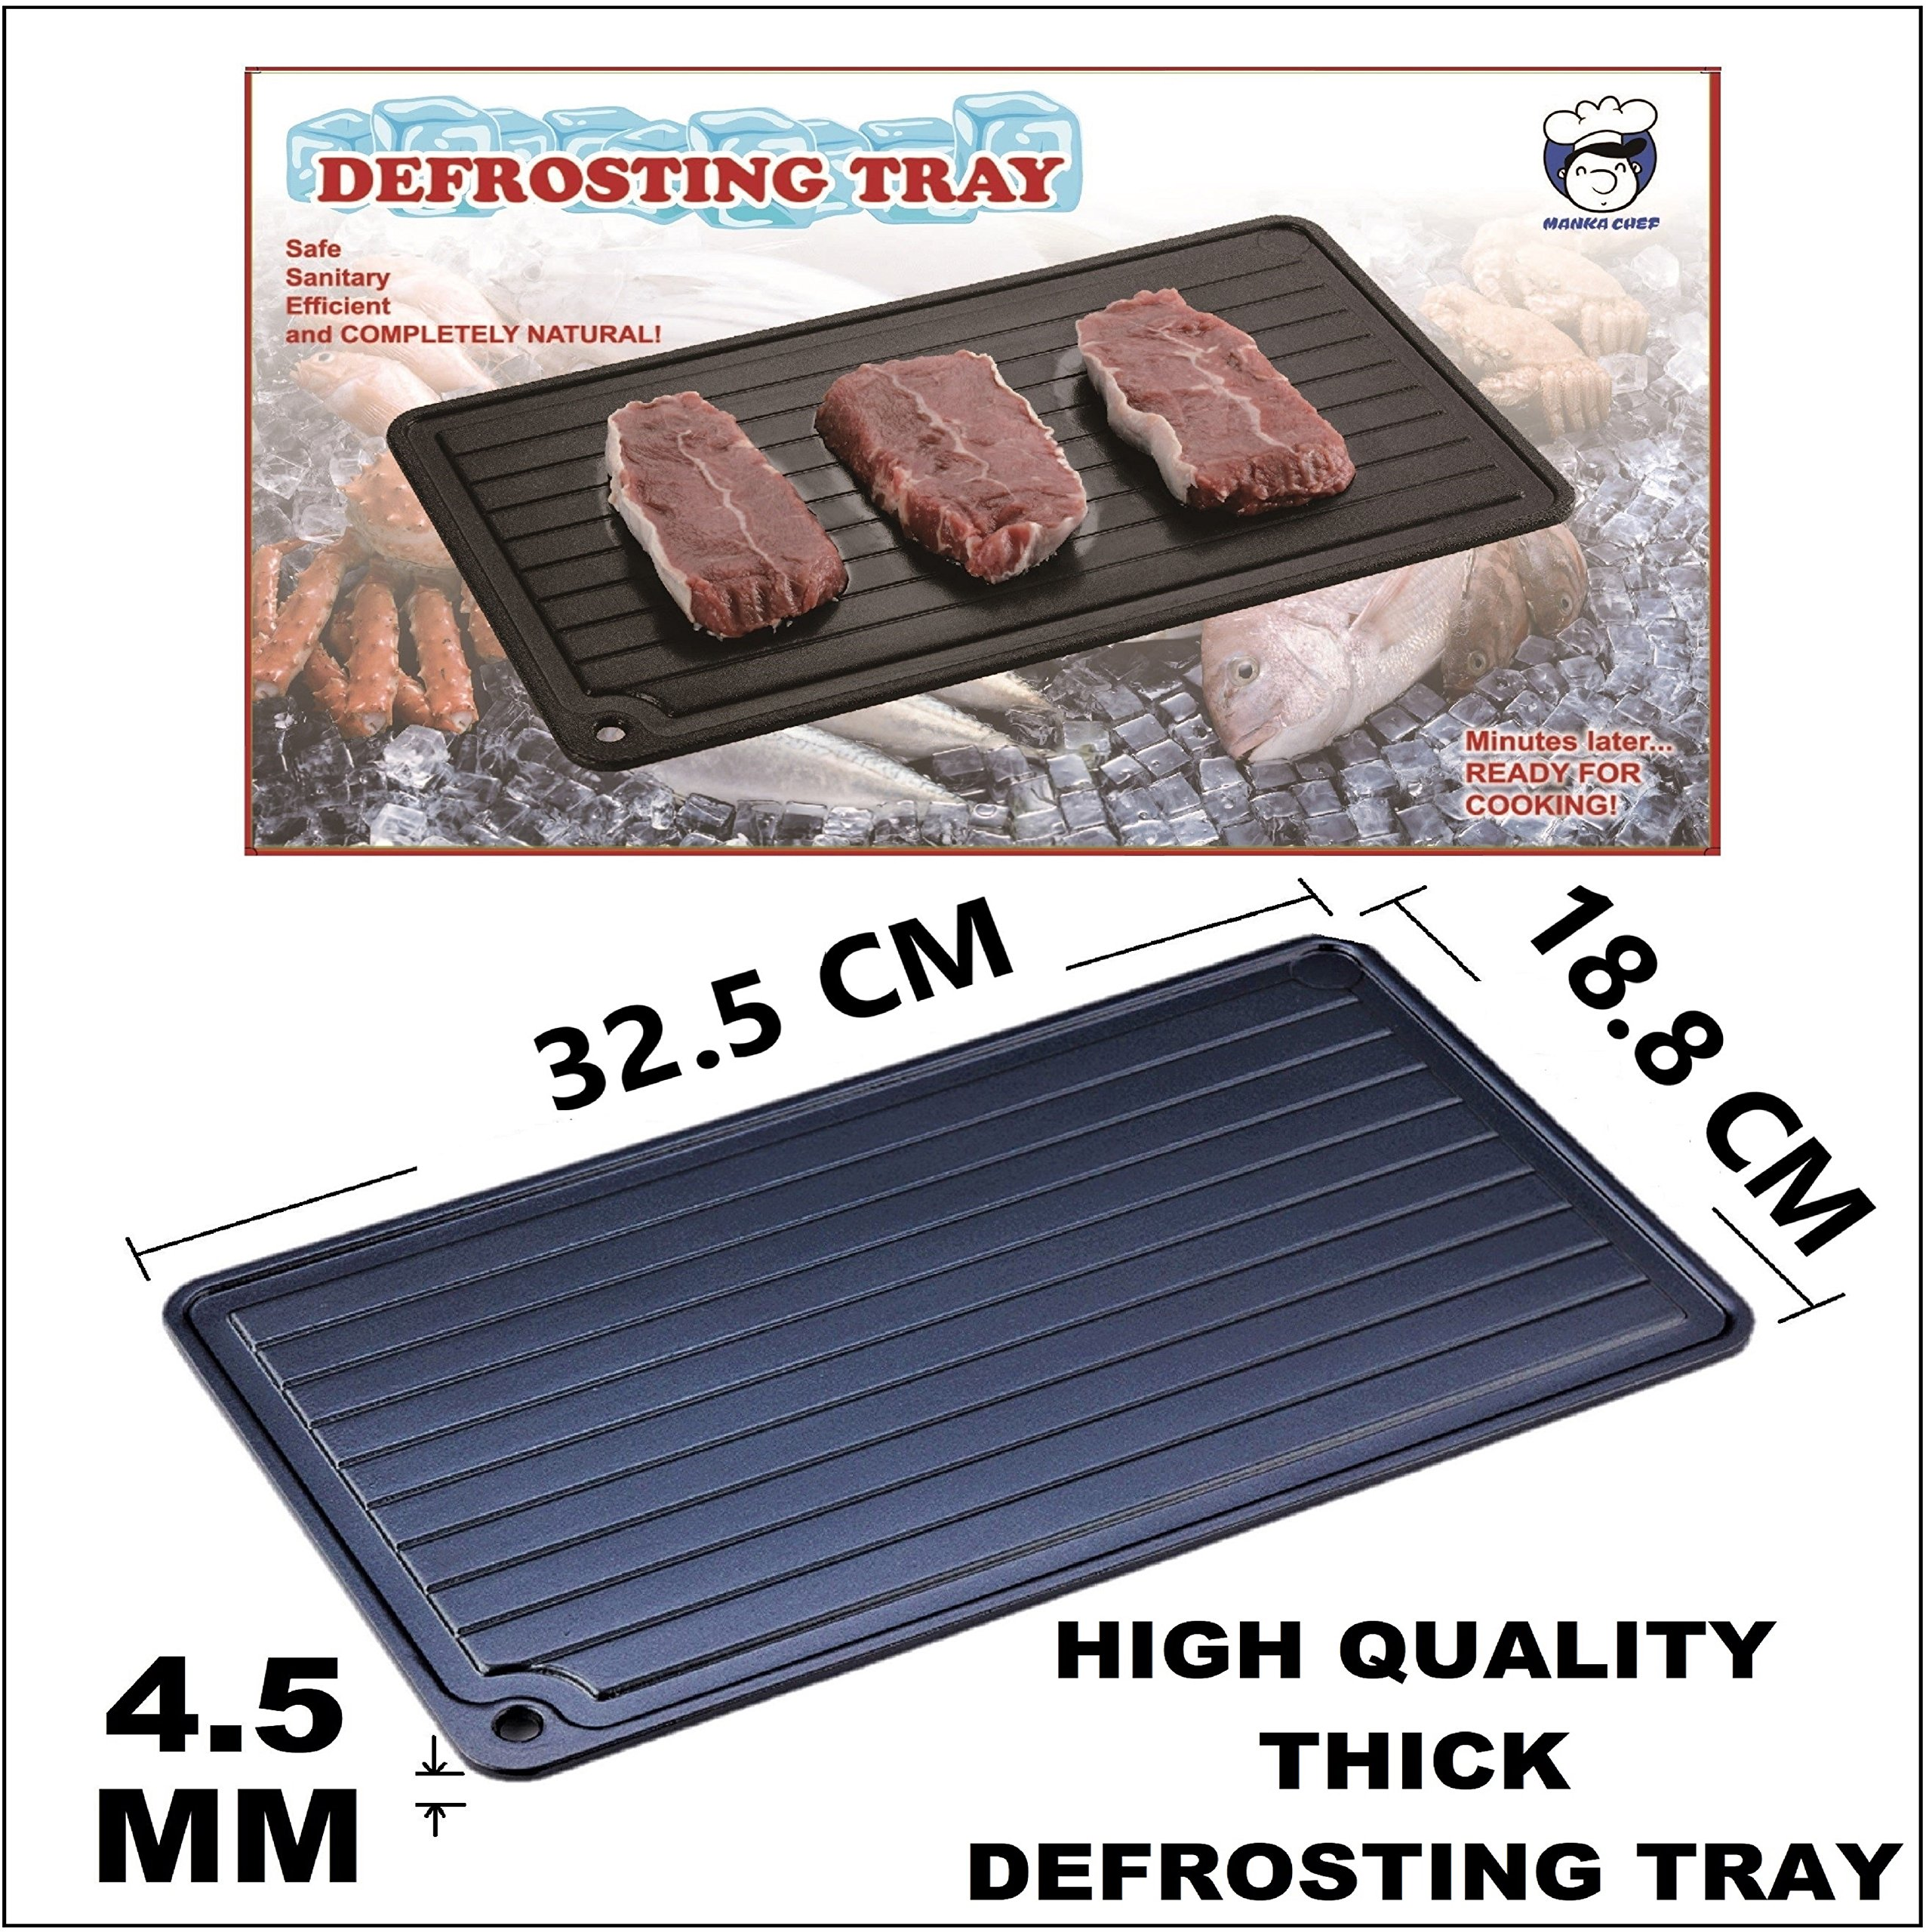 Defrosting Tray Aluminum Plate Fast Defrost Frozen Food Meats Steaks By Heat Transfer Thermal Conductivity Rapid Thawing Miracle Metal Thaw Speed Faster Than Natural Magic And Safest Way By Manka Chef by MANKA CHEF